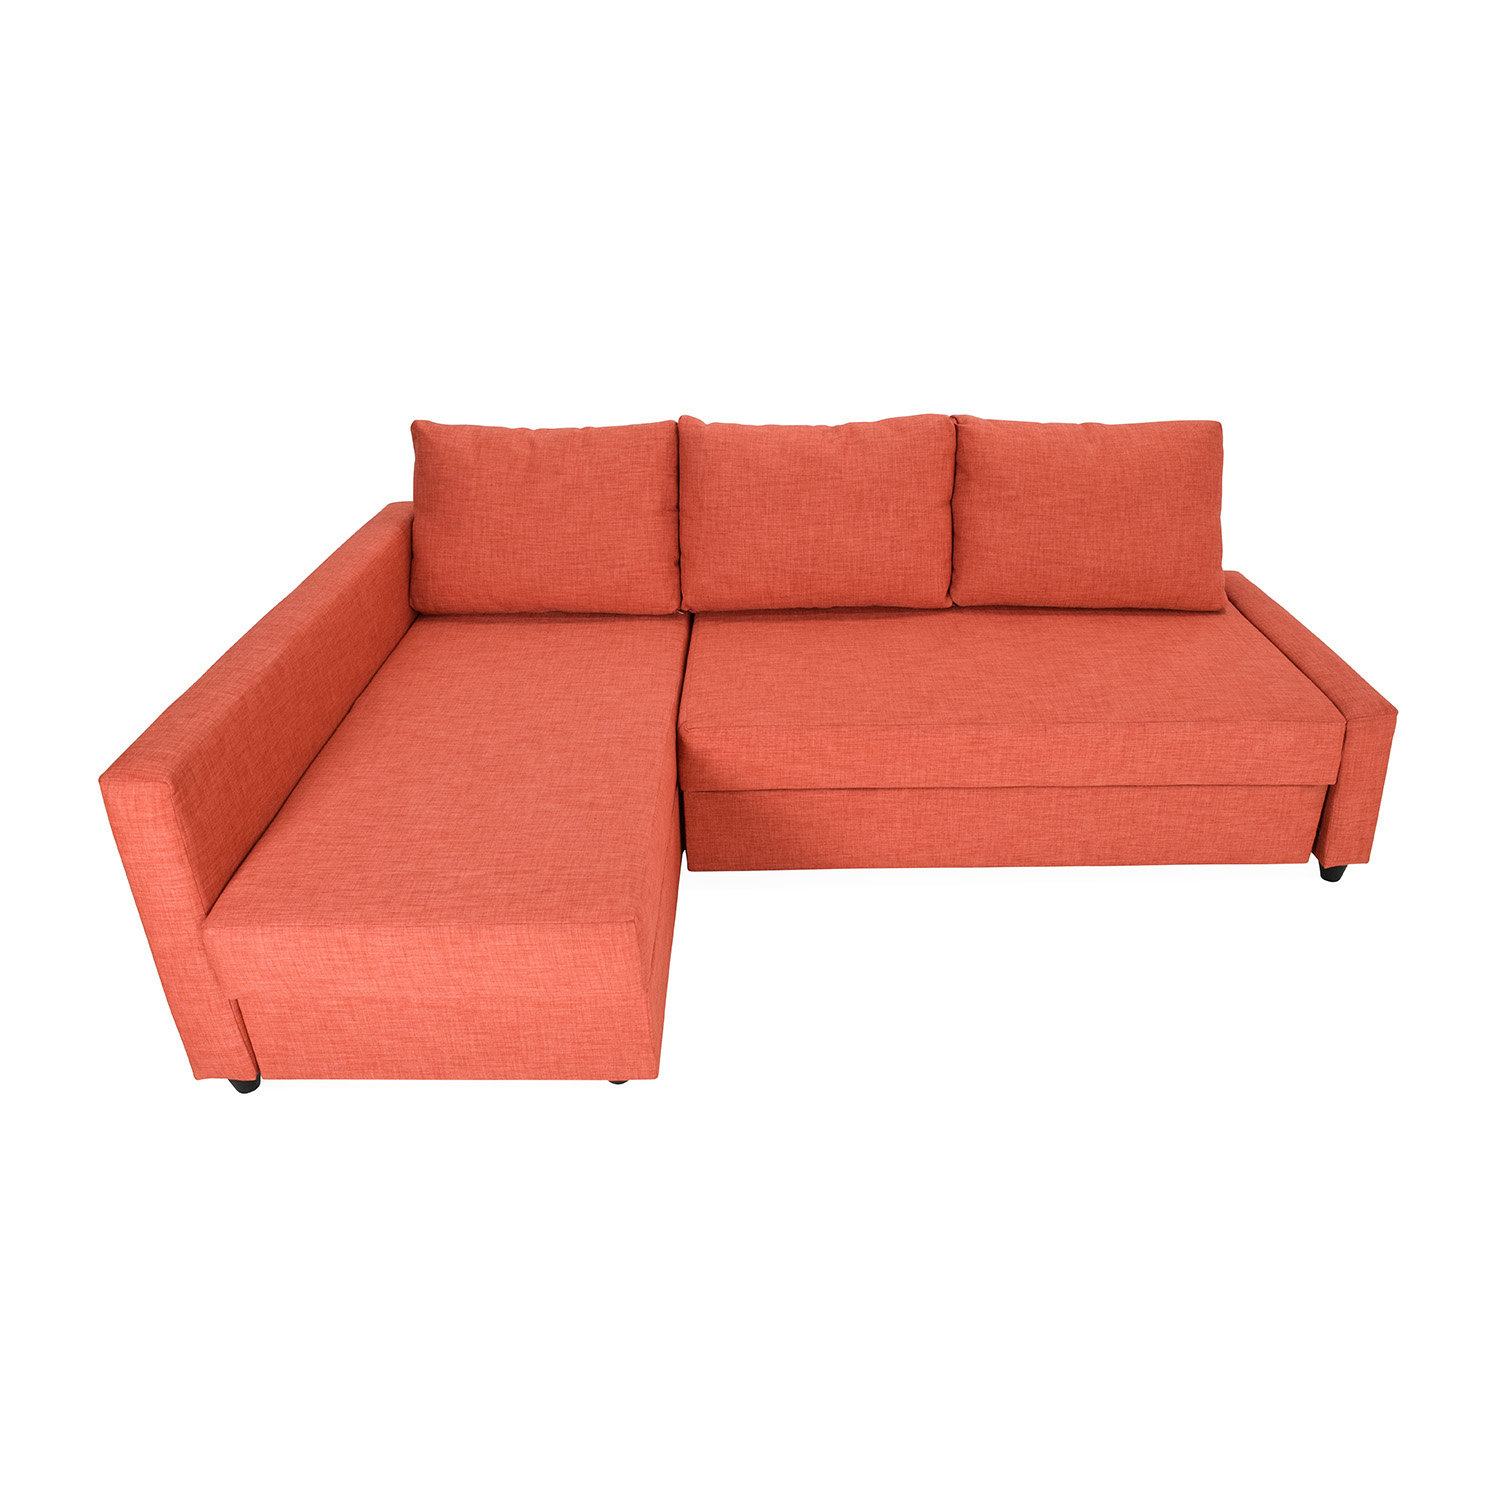 chaise sofa bed ikea naples leather leon s 49 off friheten with sofas